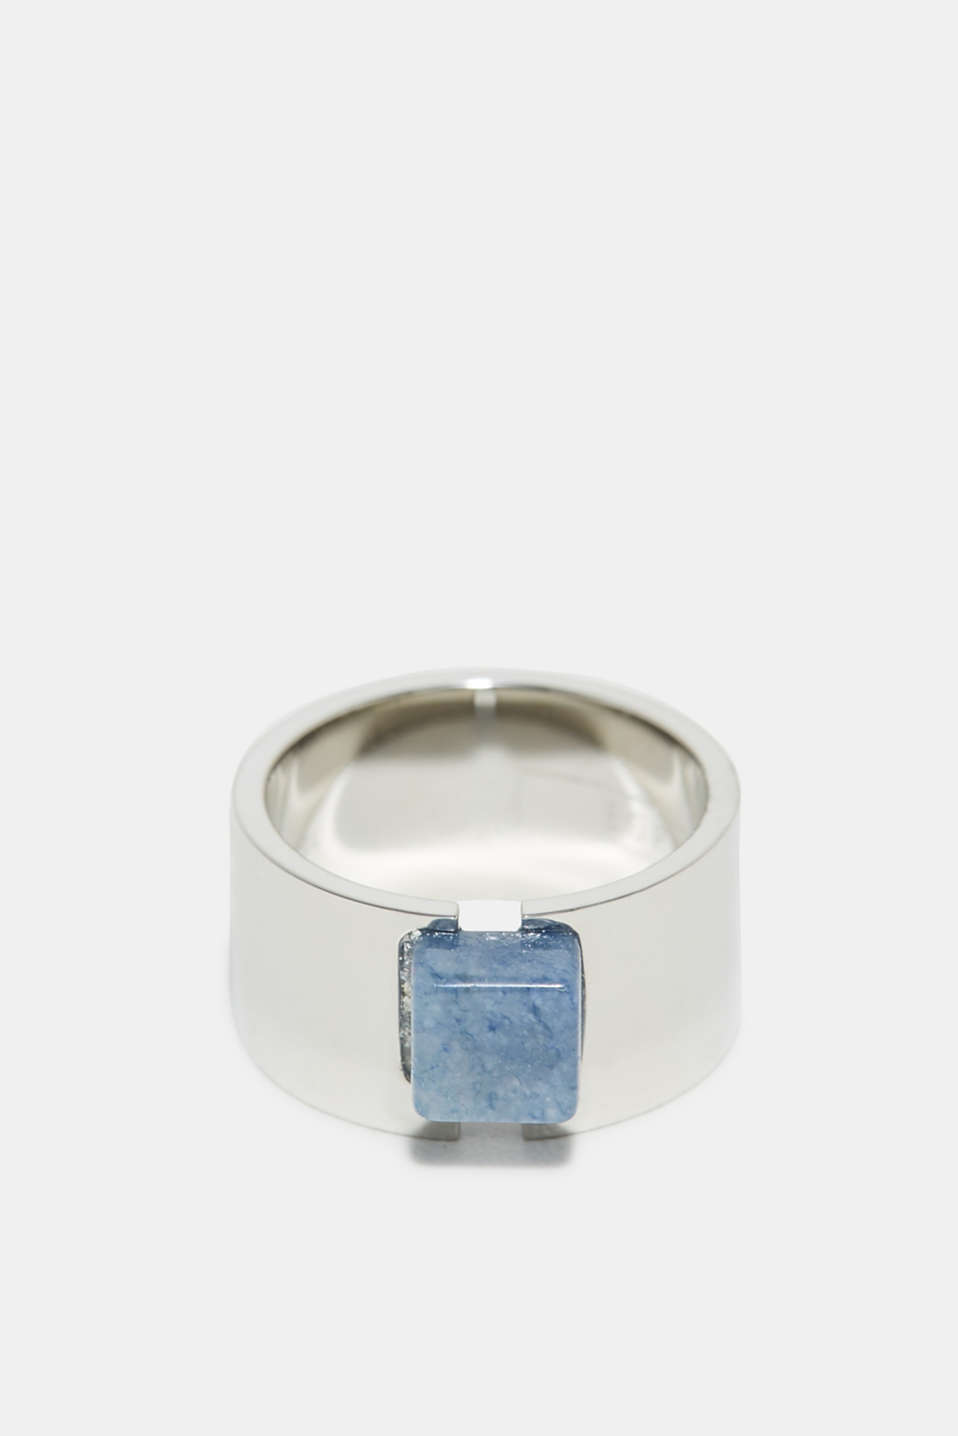 Esprit - Statement ring met zachtblauwe steen